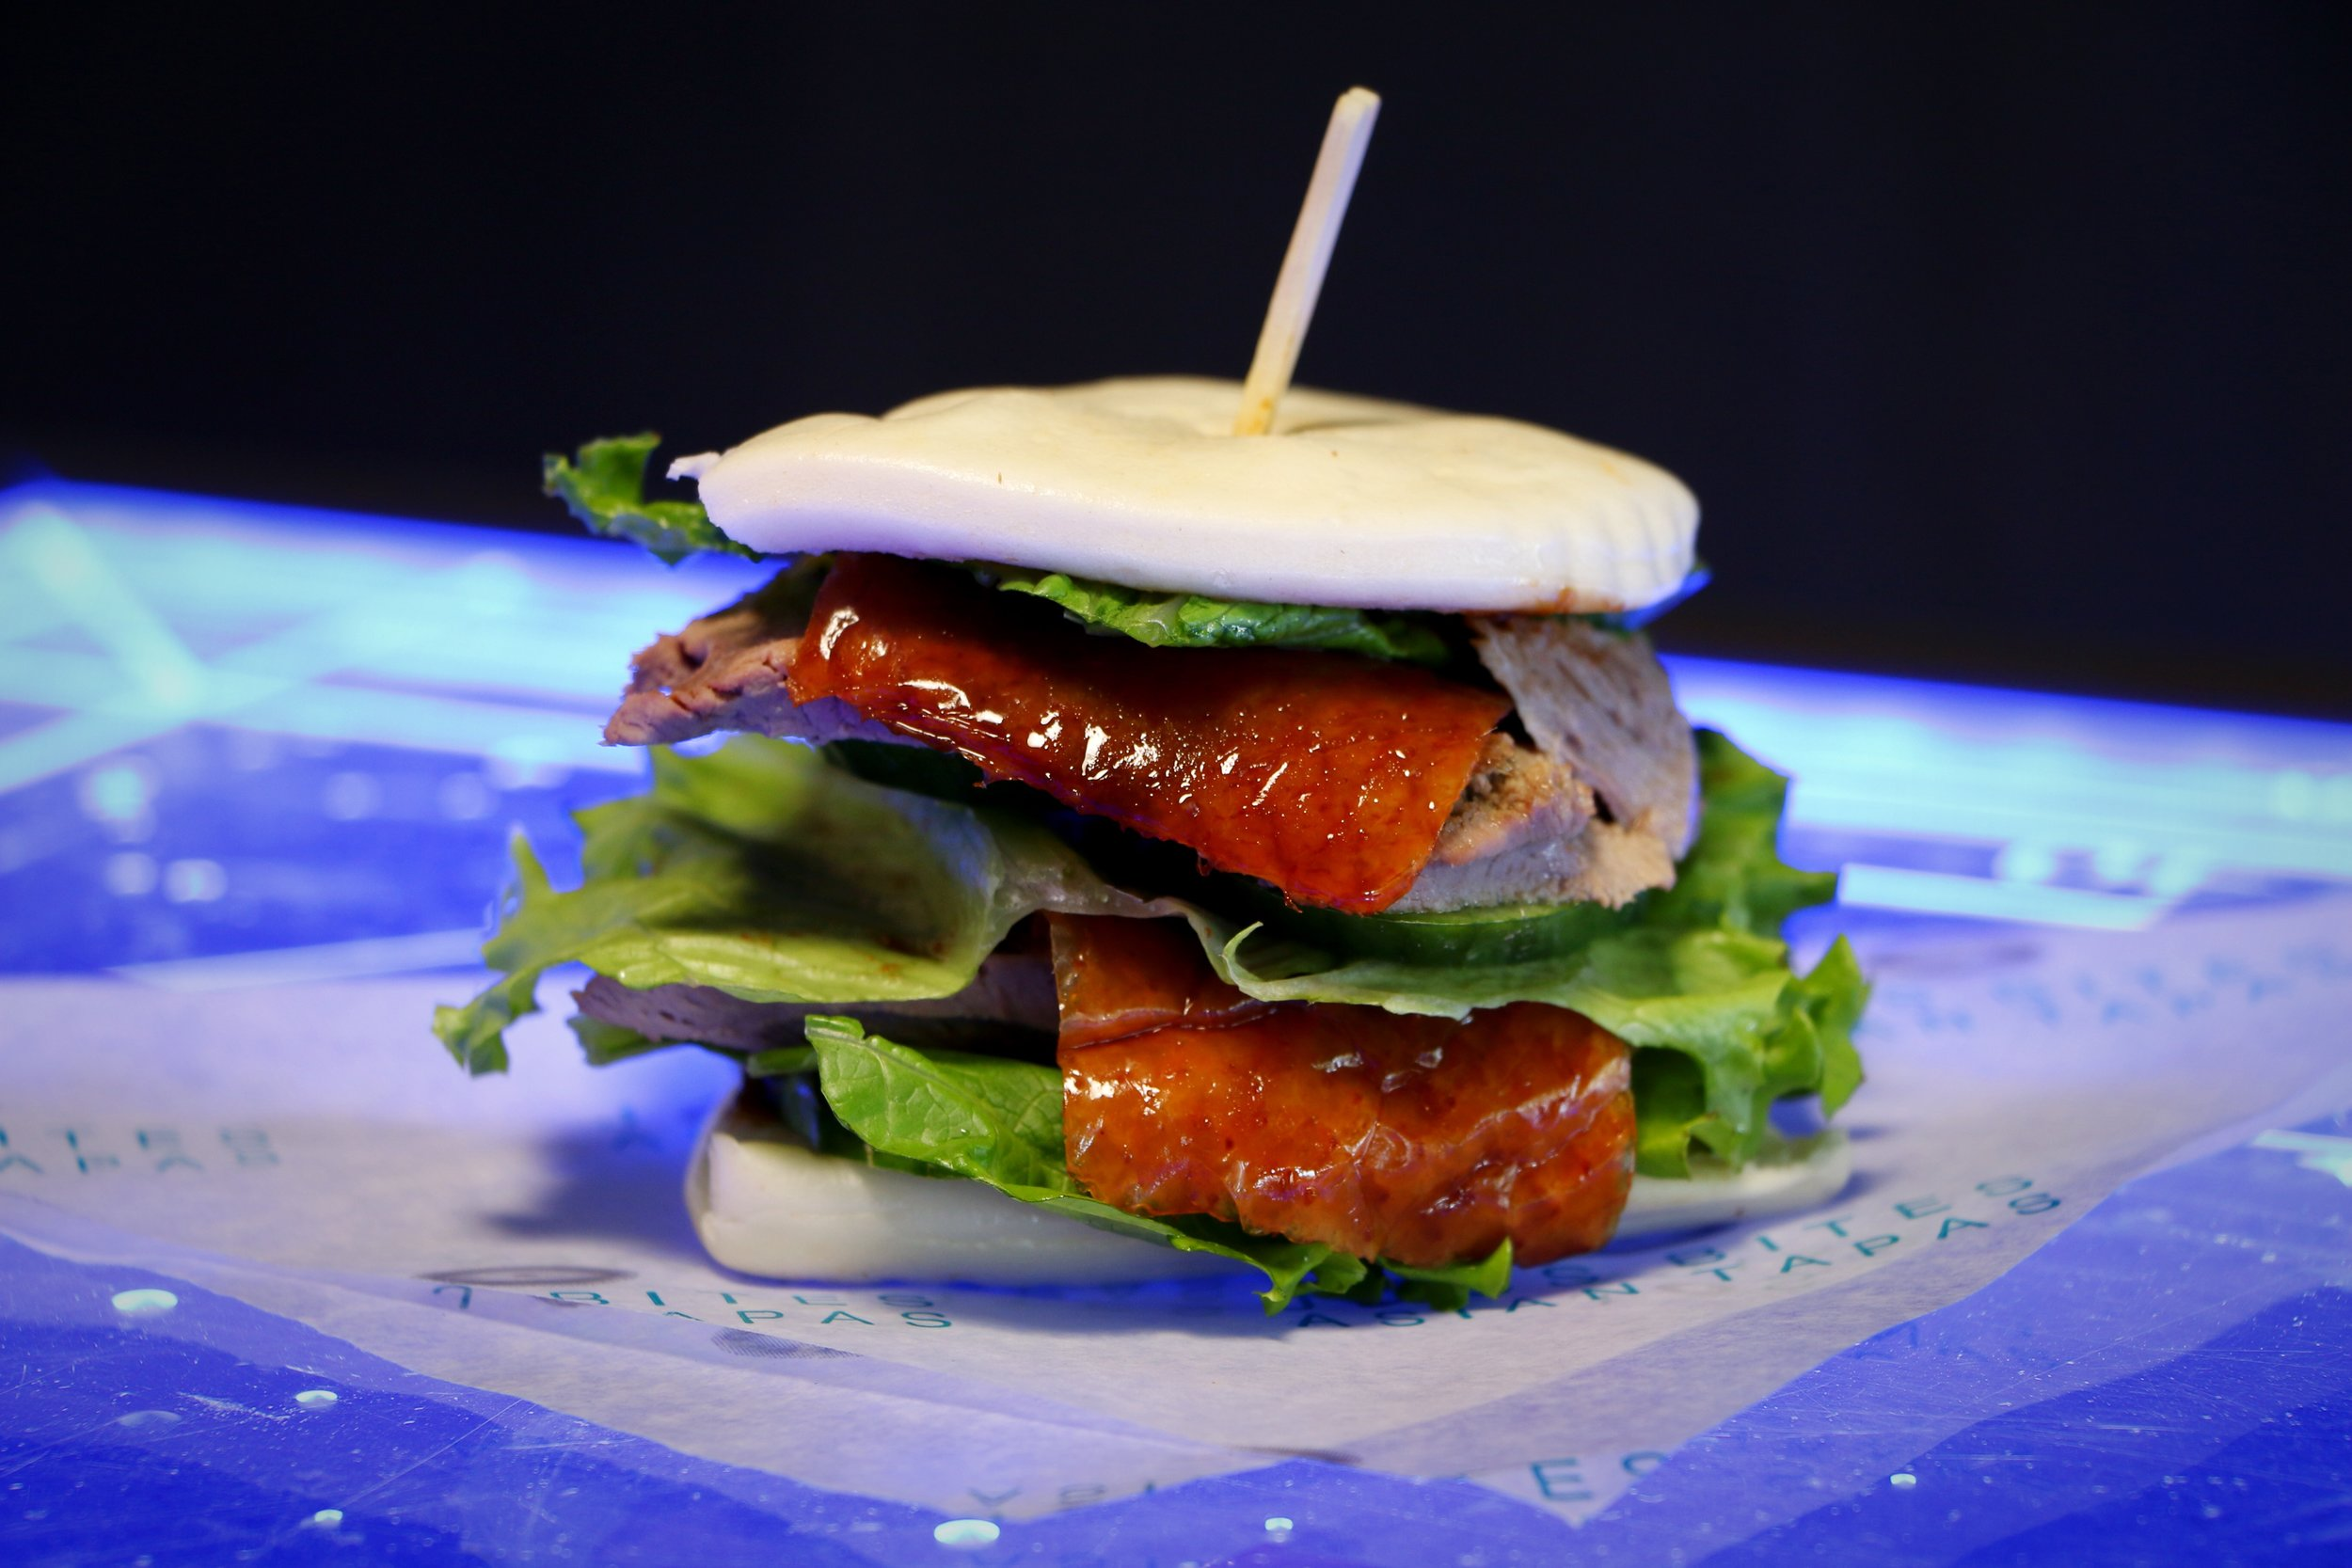 Not all casual food is created equal - The sophists neighborhood hamburger jointEnjoy!